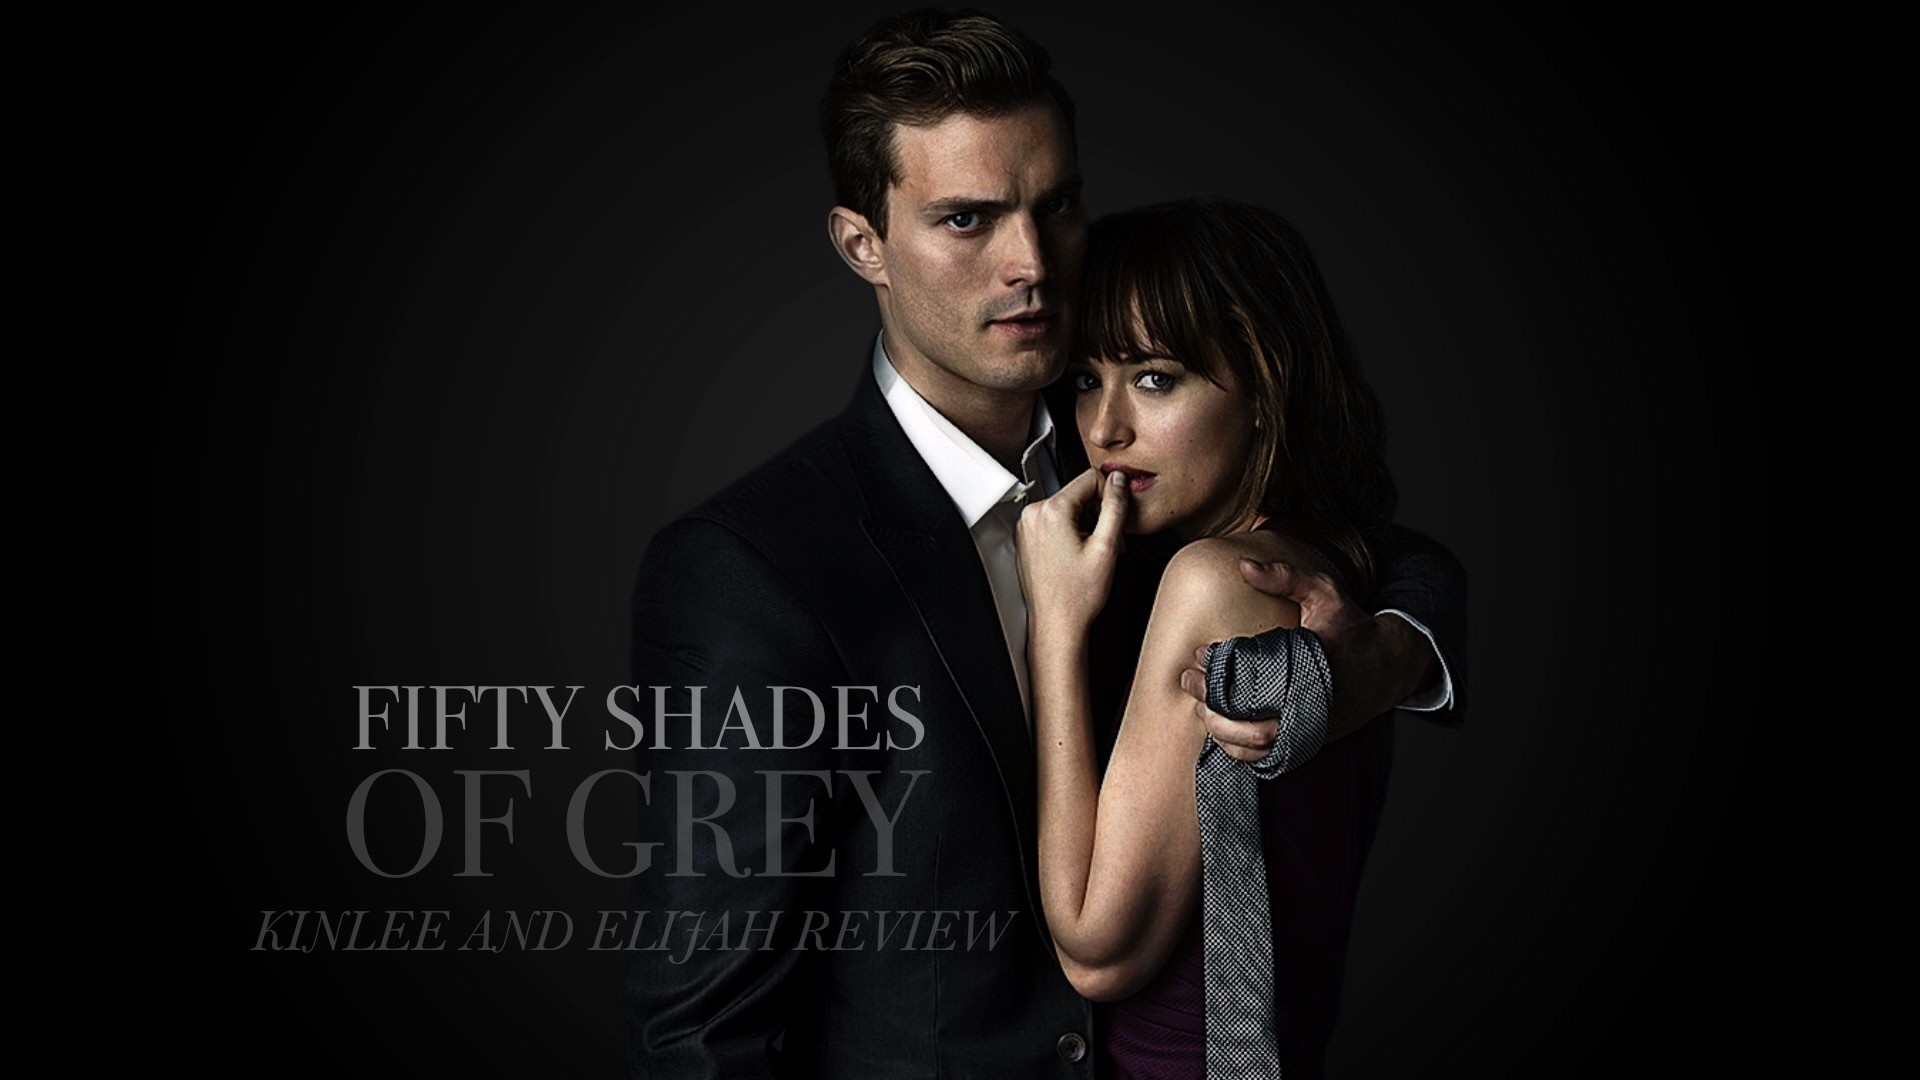 Fifty shades of grey wallpapers 74 images for Fifth shade of grey